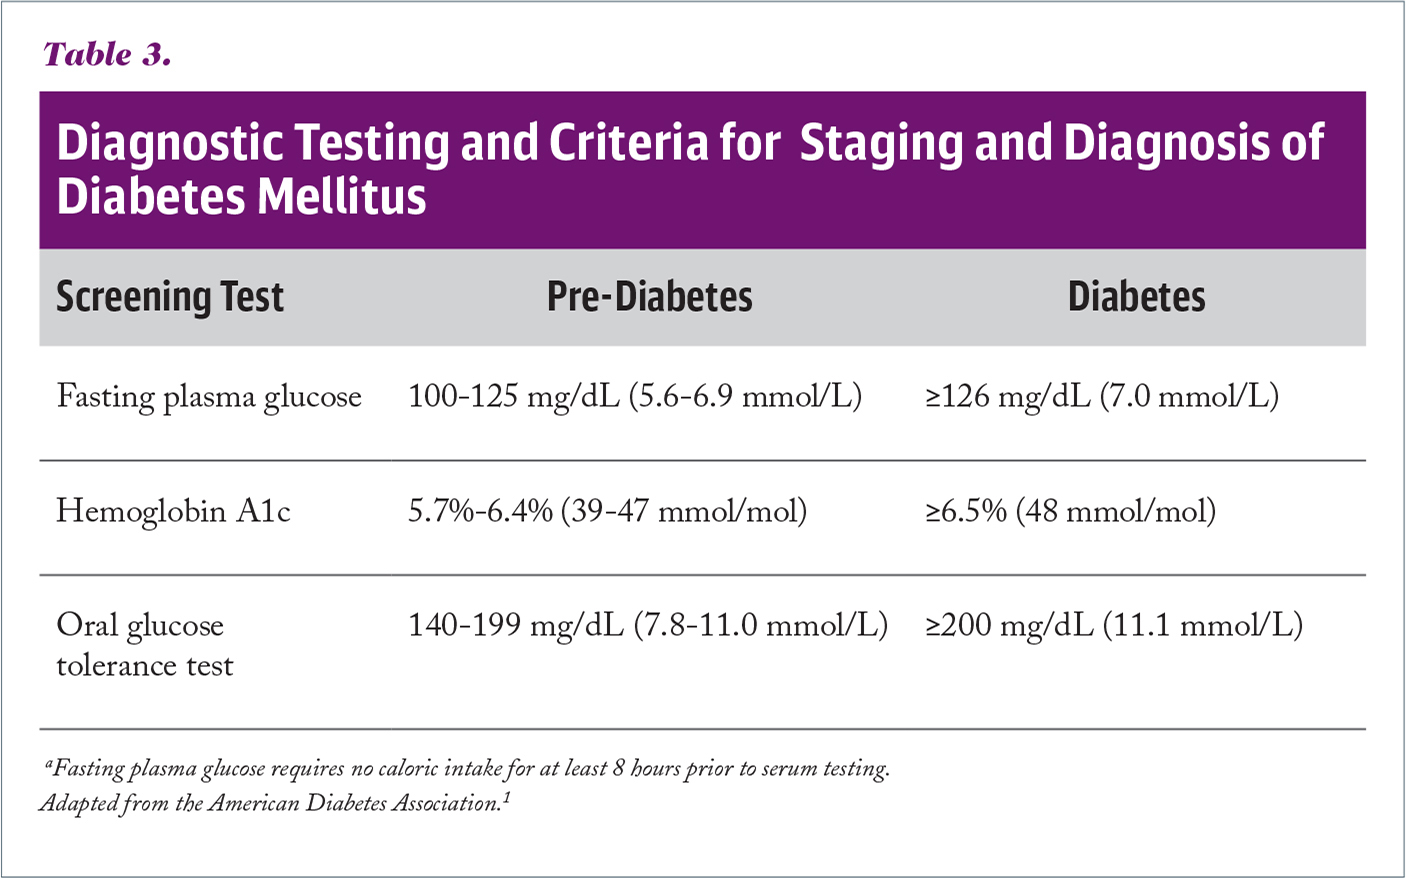 Diagnostic Testing and Criteria for Staging and Diagnosis of Diabetes Mellitus